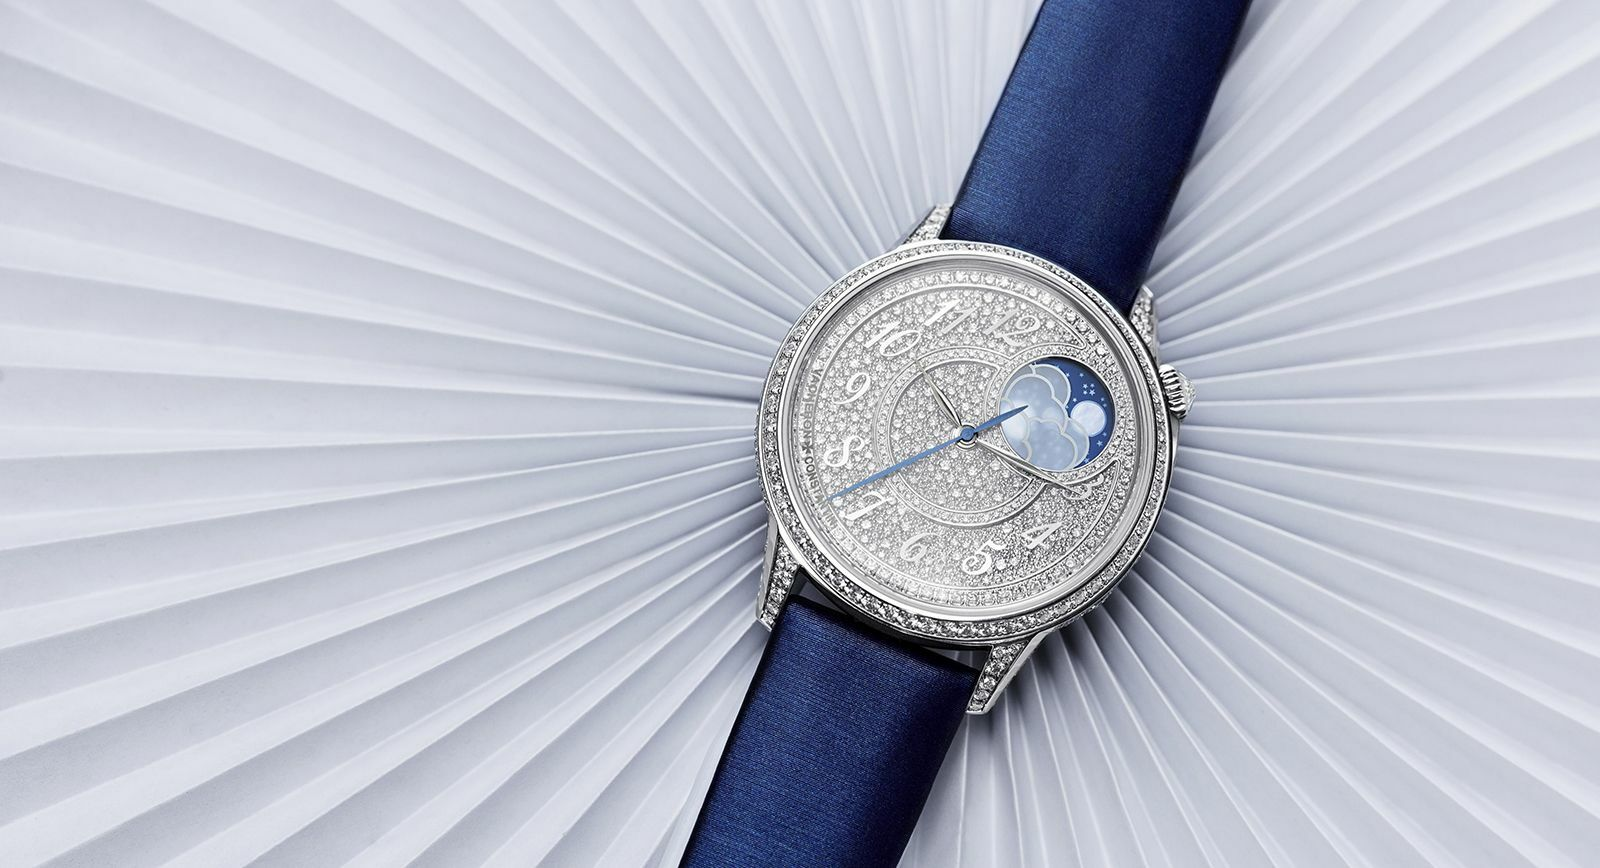 Vacheron Constantin Égérie collection of ladies watch